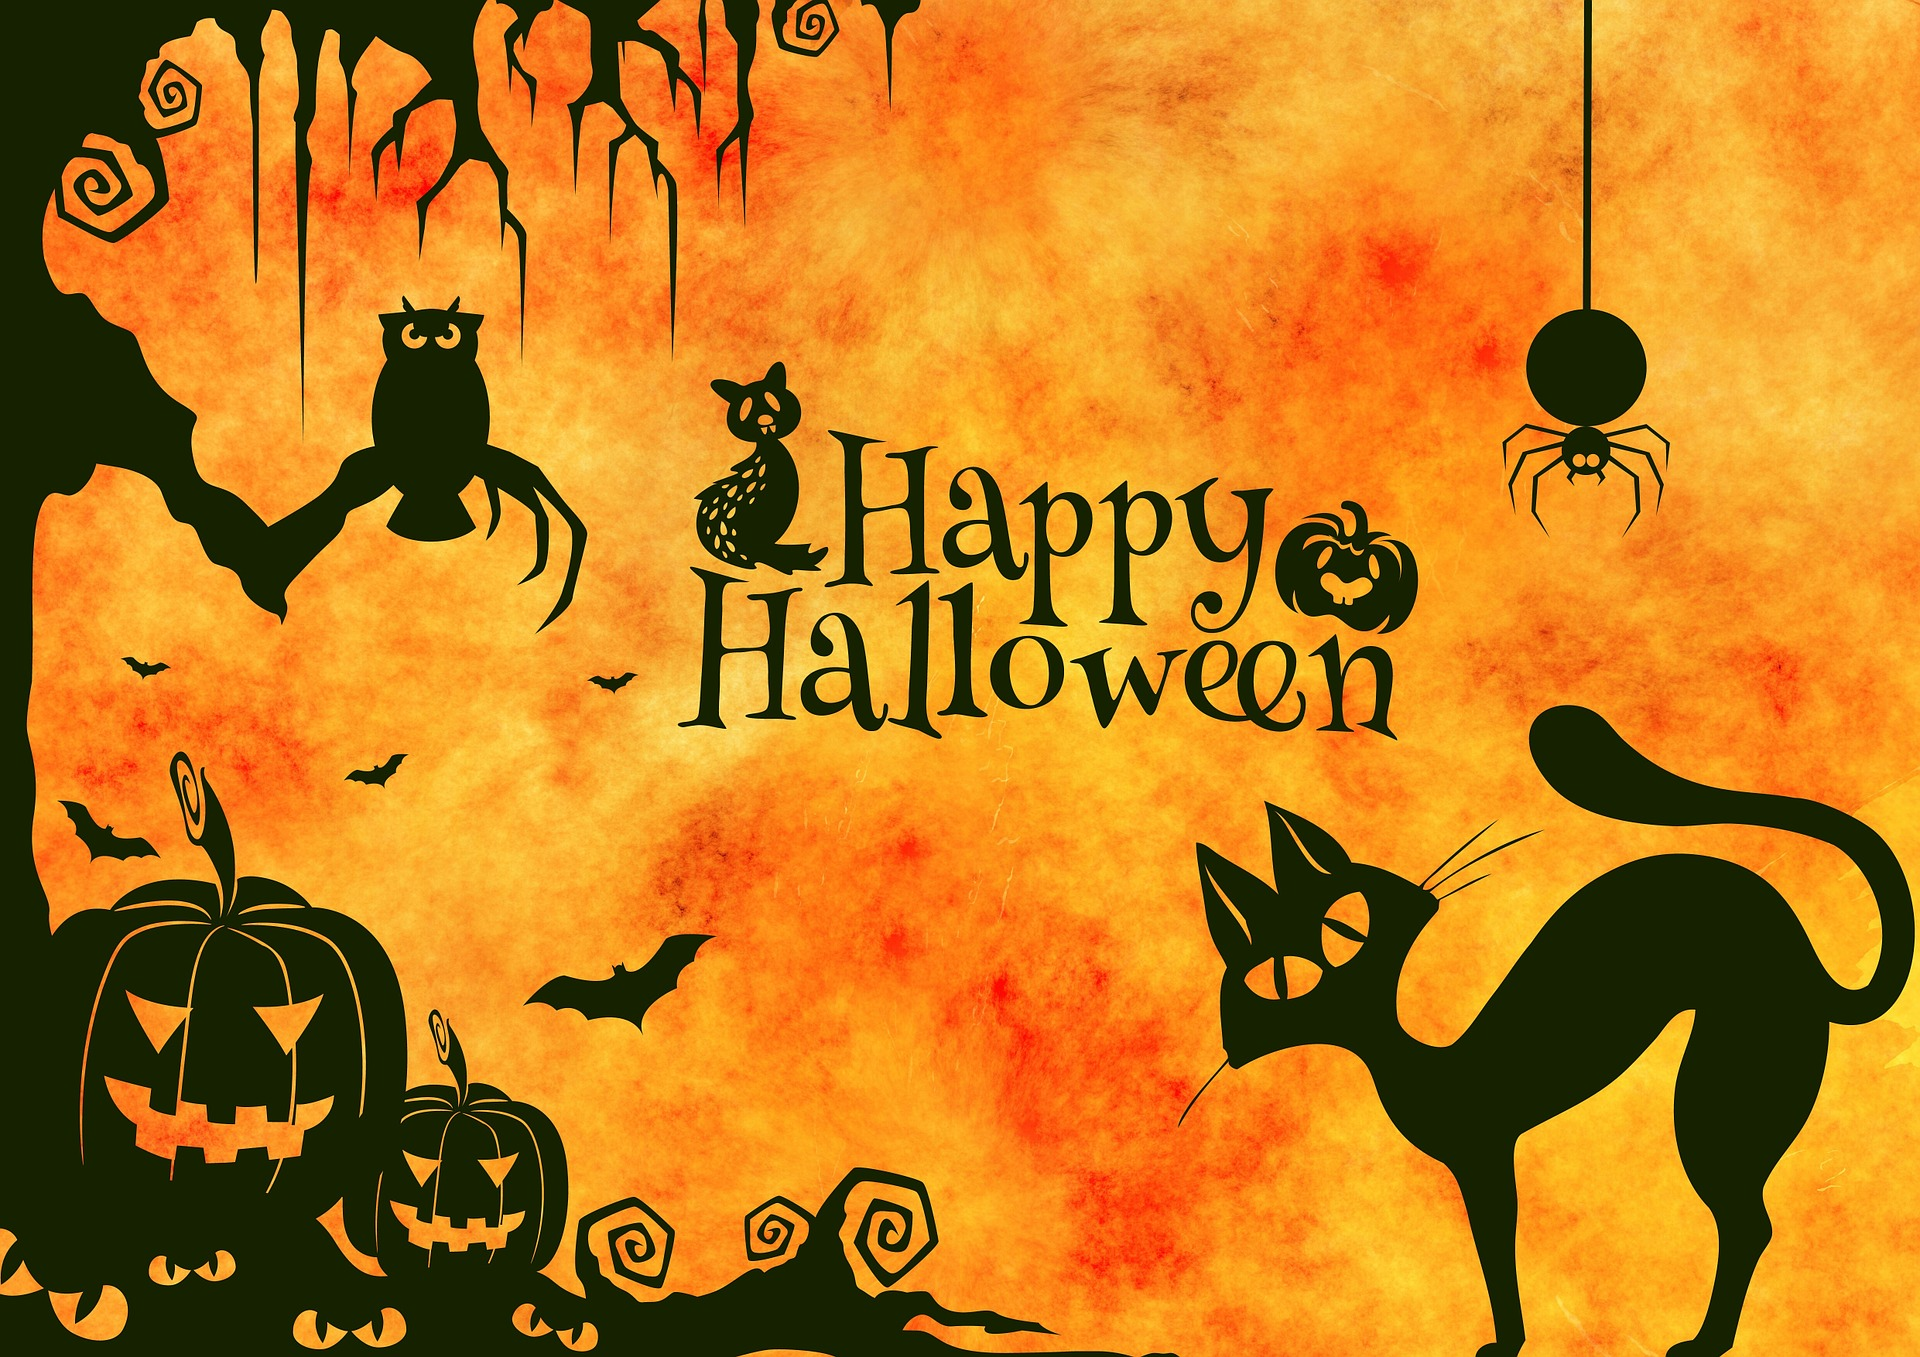 city of joy gears up for halloween | media india group